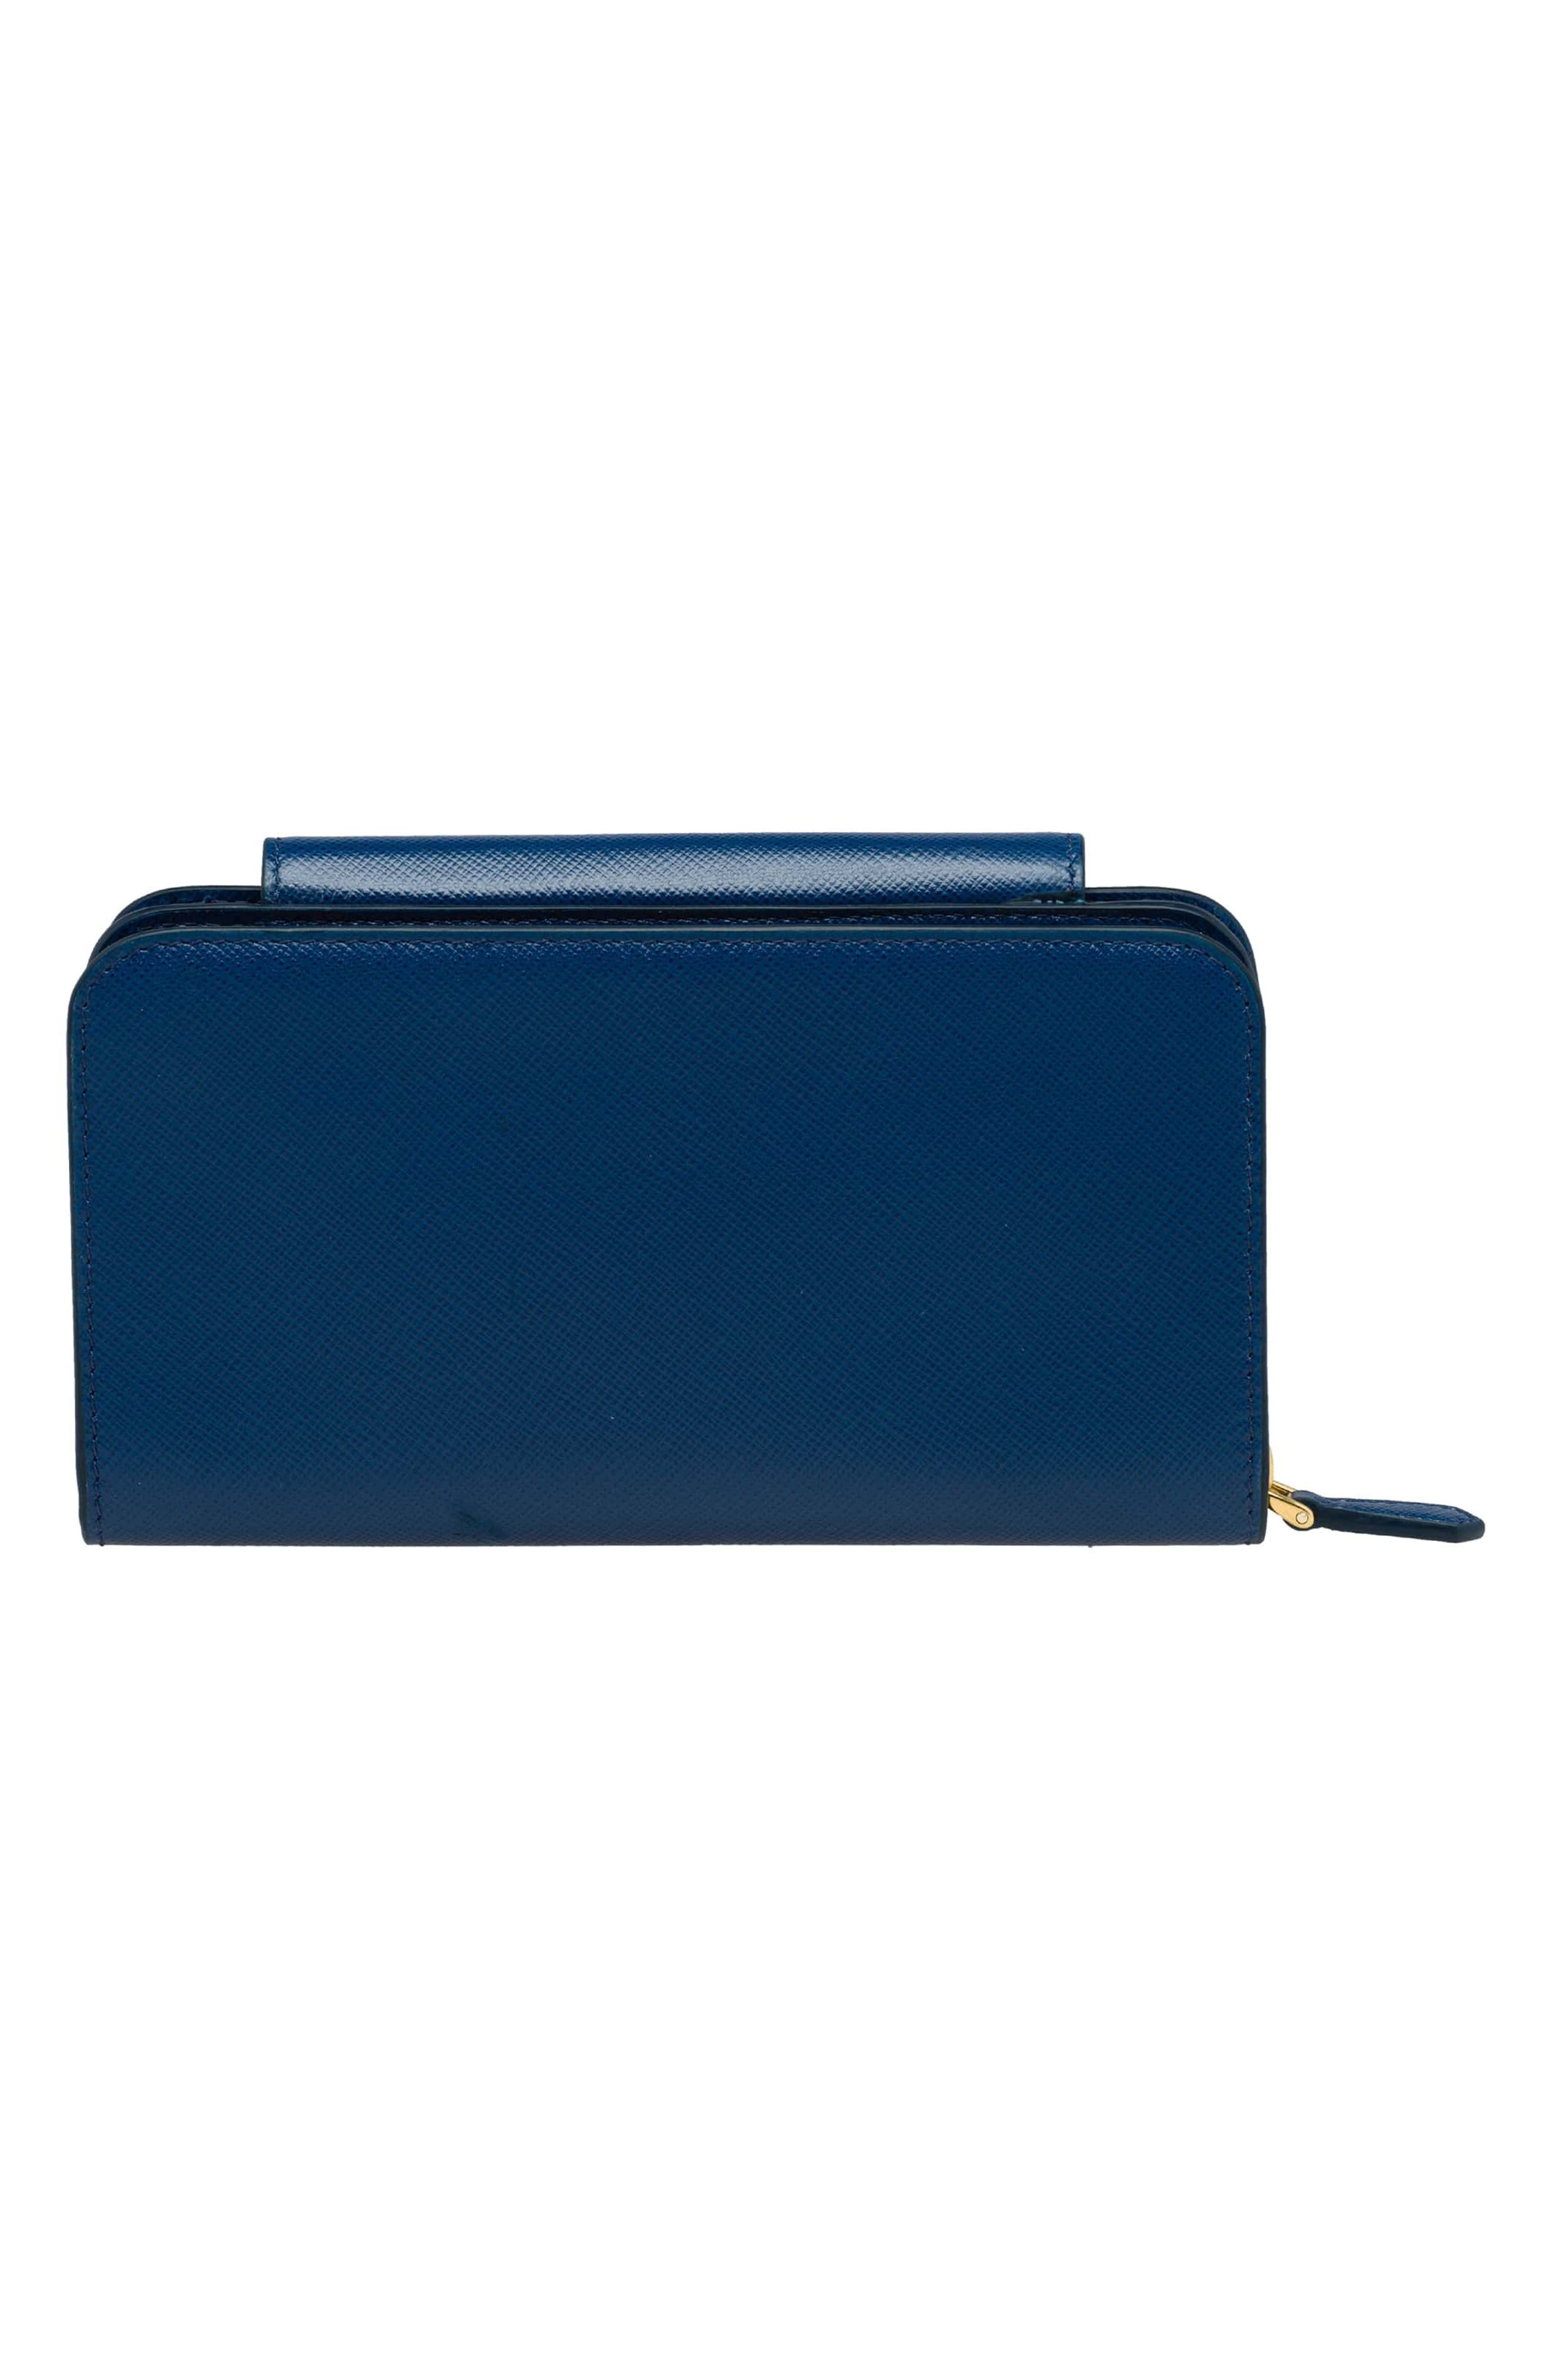 Saffiano Leather Metal Oral Phone Wallet on a Chain,                             Alternate thumbnail 3, color,                             Bluette